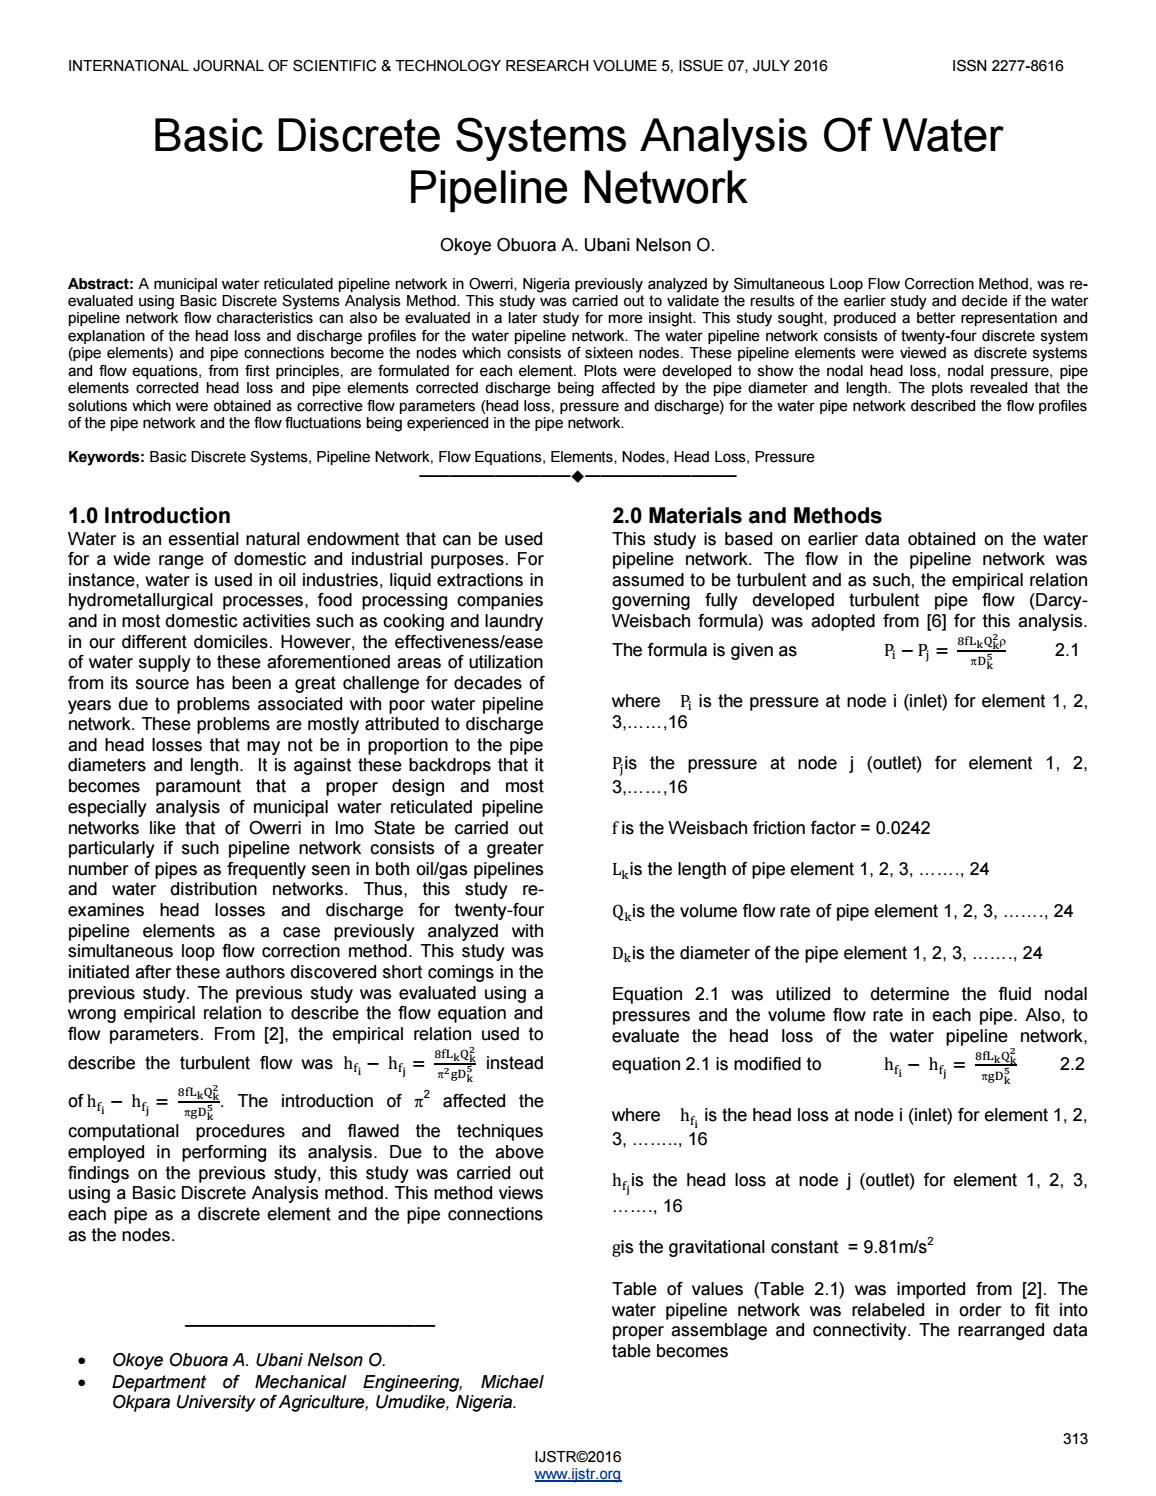 Basic discrete systems analysis of water pipeline network by